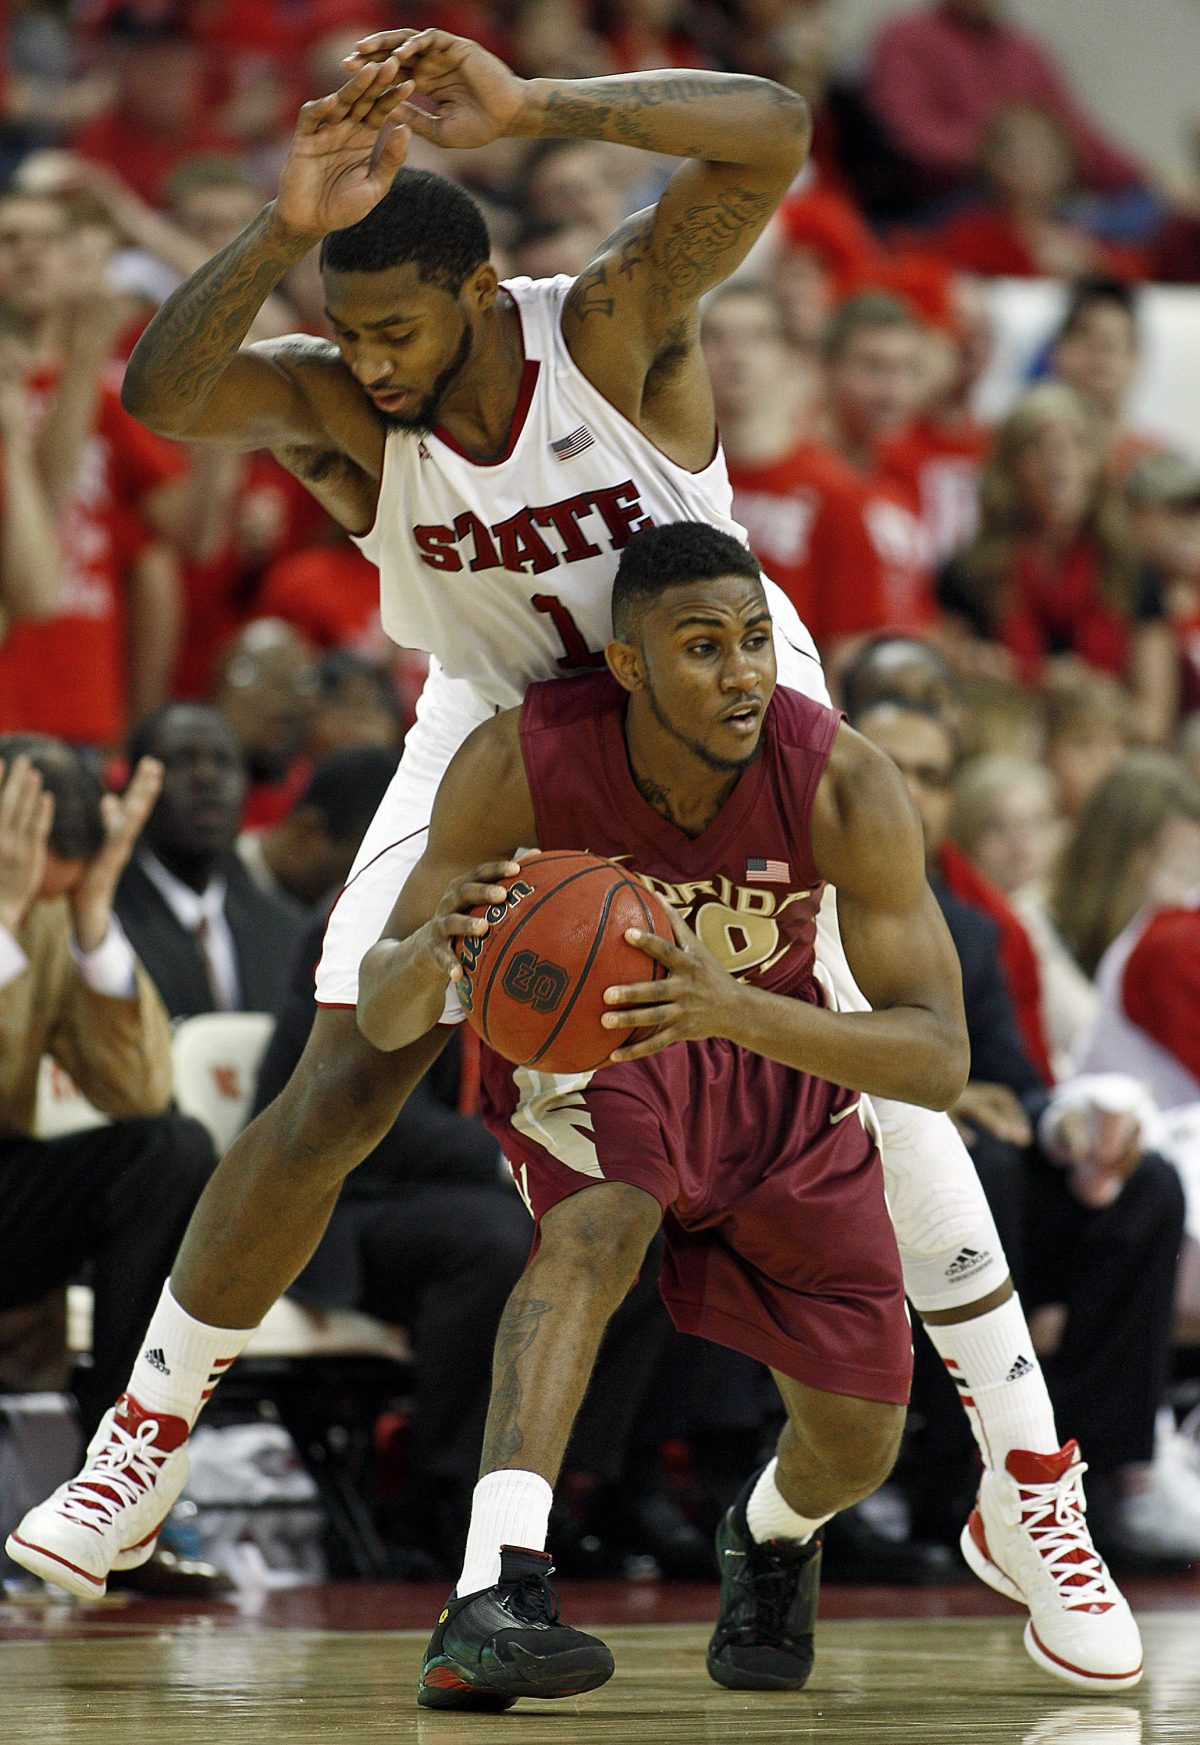 North Carolina State's Richard Howell (1) collides with Florida State's Ian Miller (30) during the second half of an NCAA college basketball game in Raleigh, N.C., Saturday, Feb. 18, 2012. Miller had 17 points to lead the Seminoles to a 76-62 win over NC State. (AP Photo/Karl B DeBlaker)